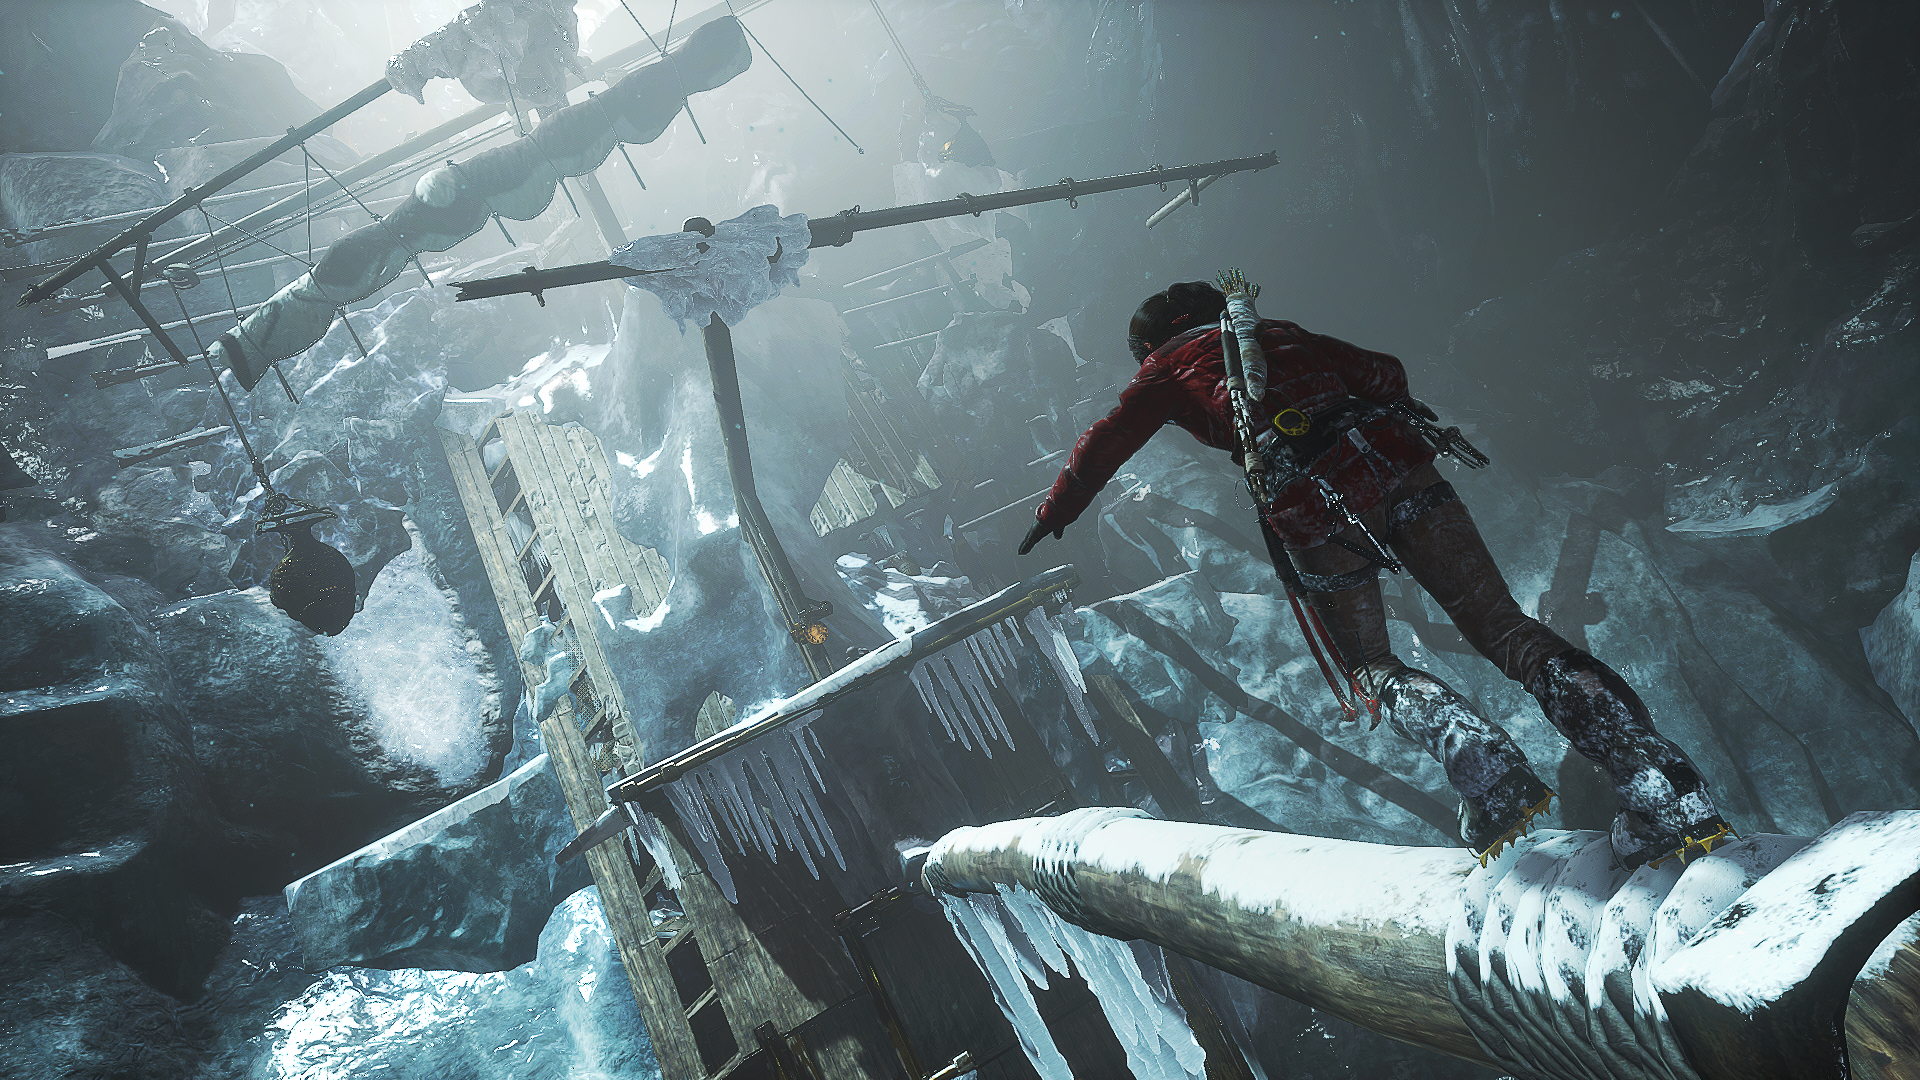 Rise of the Tomb Raider mostrará unos gráficos aún mejores